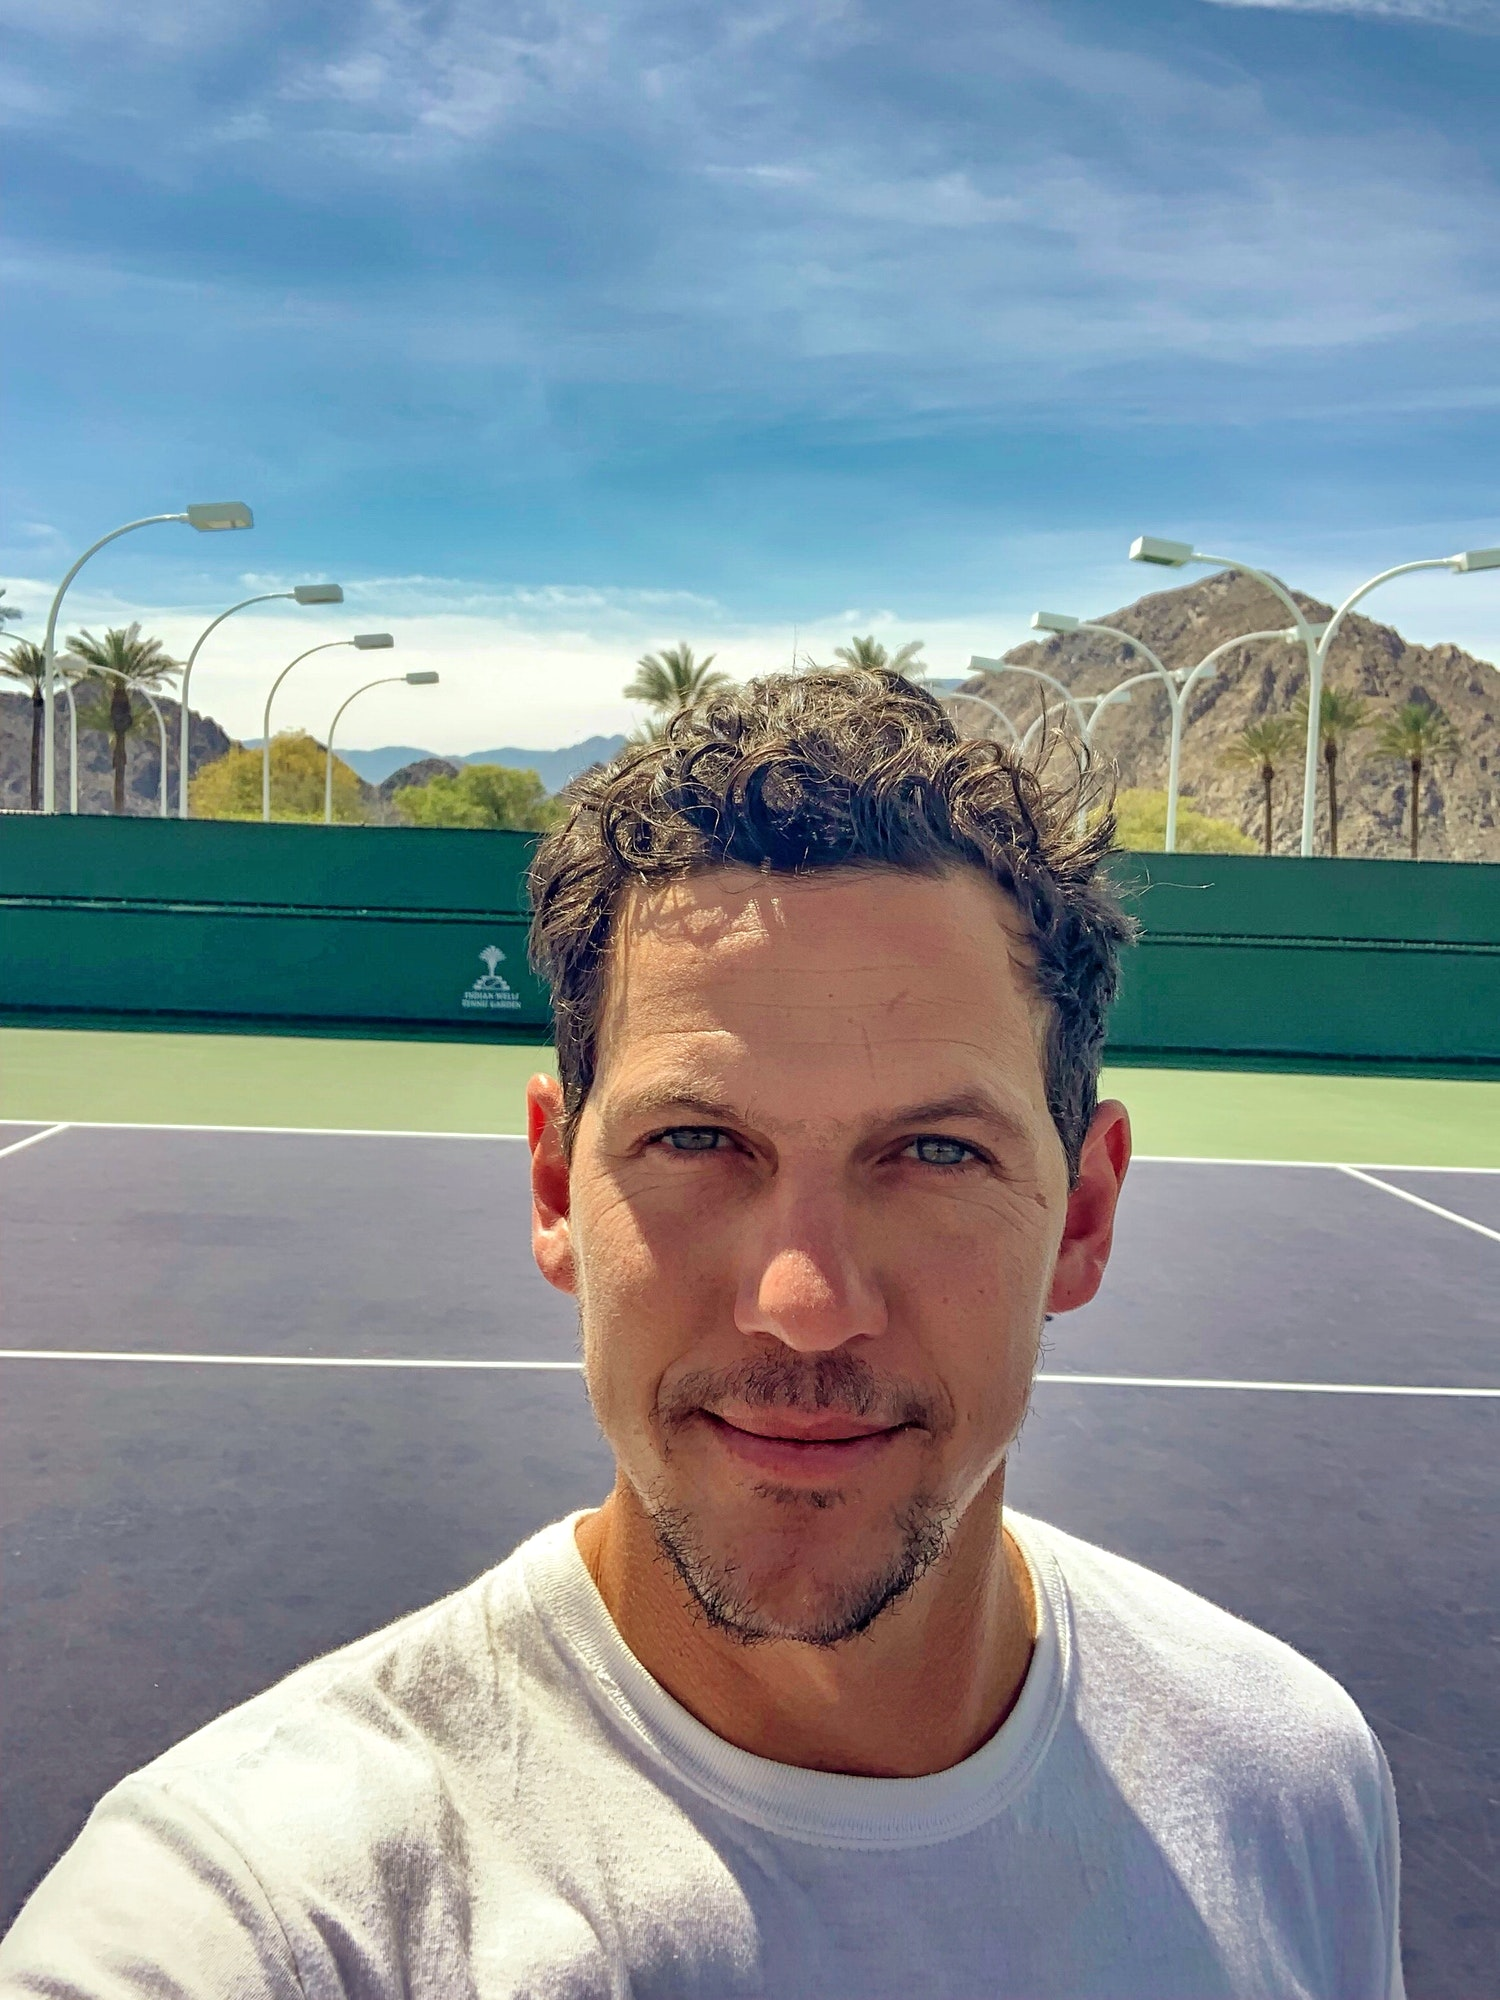 Jeremy M. teaches tennis lessons in Los Angeles, CA